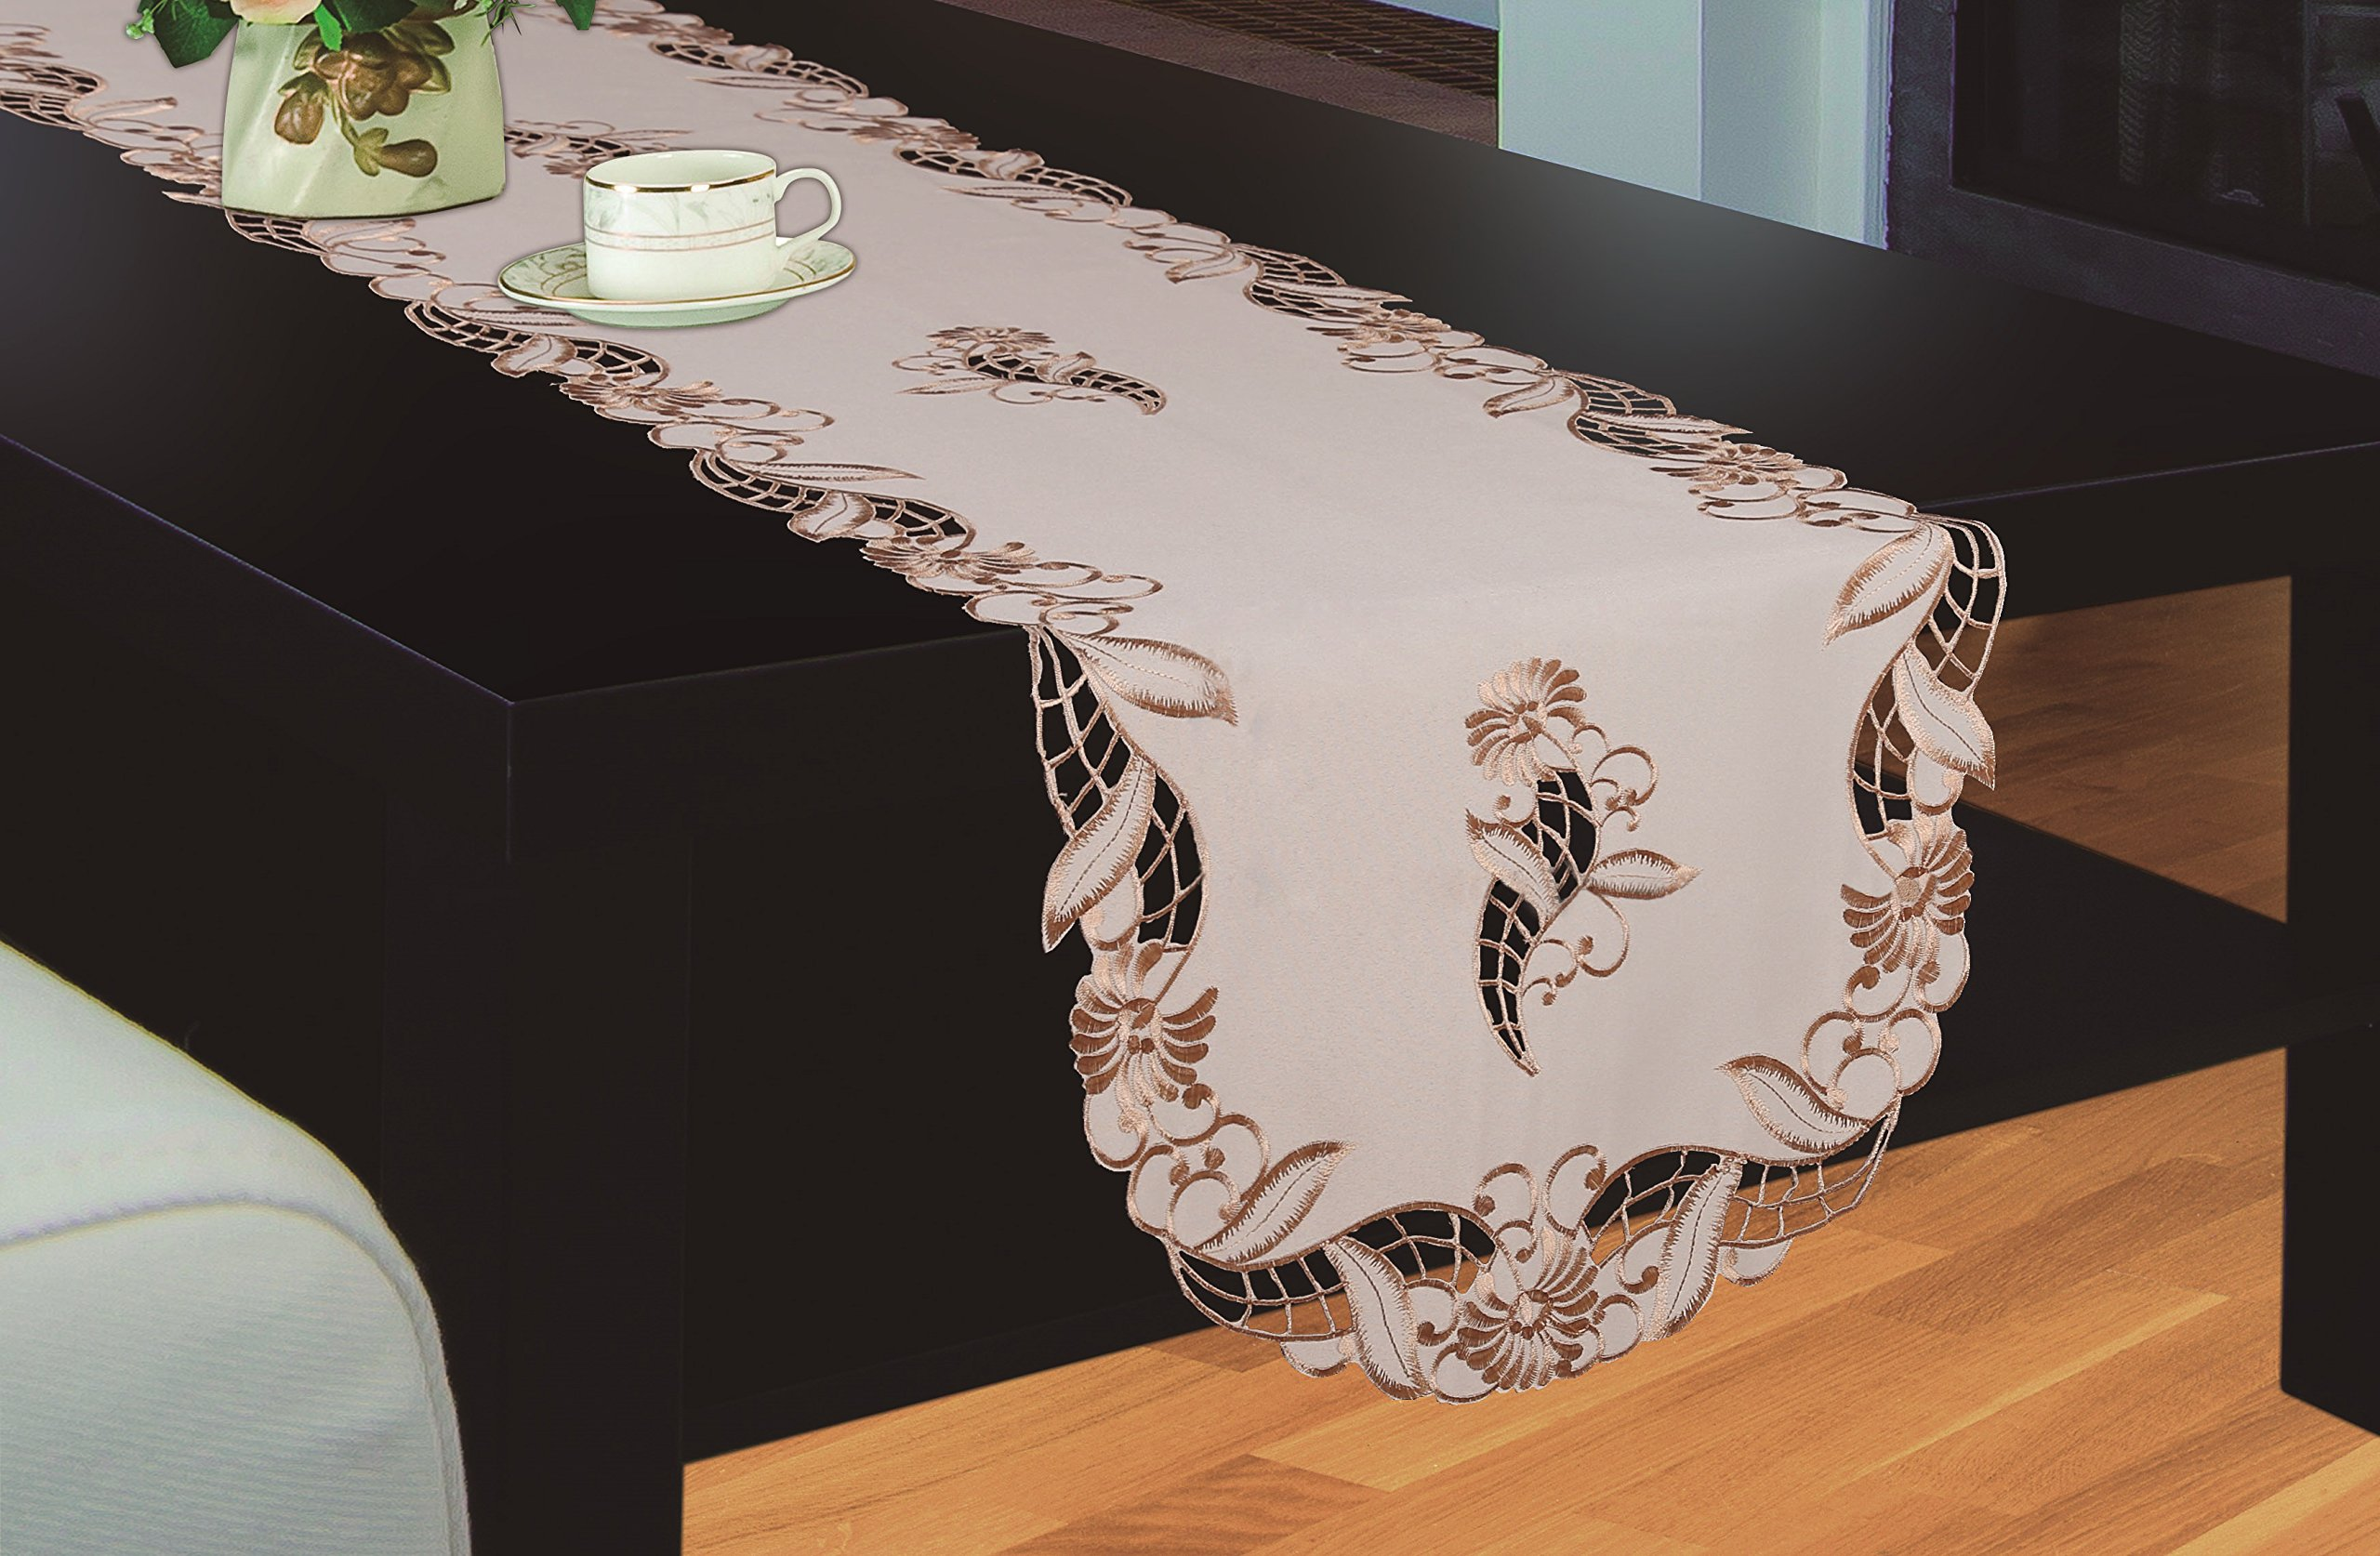 Royal Bedding Sydney Table Runner, Luxury Embroidered and Hand Cutwork Table Runner, Top Dinner Kitchen Table Runner, 16 x 36 Inches, Beige and Gold